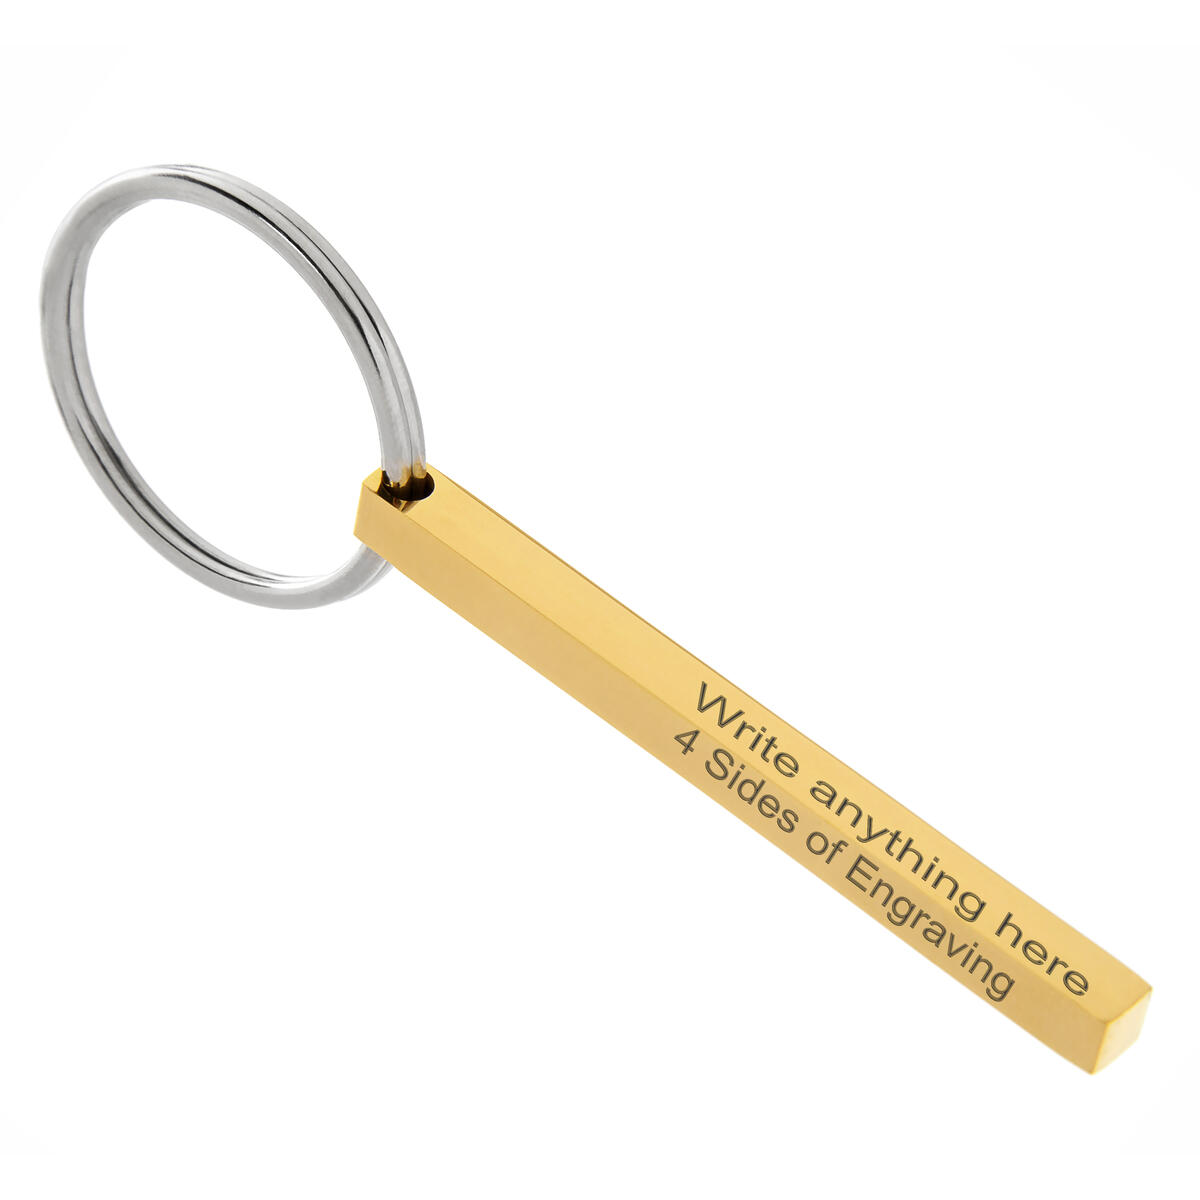 Custom Engraved Keychain. 4 Sides of FREE engraving. Customizable Personal Key Chain with Ring